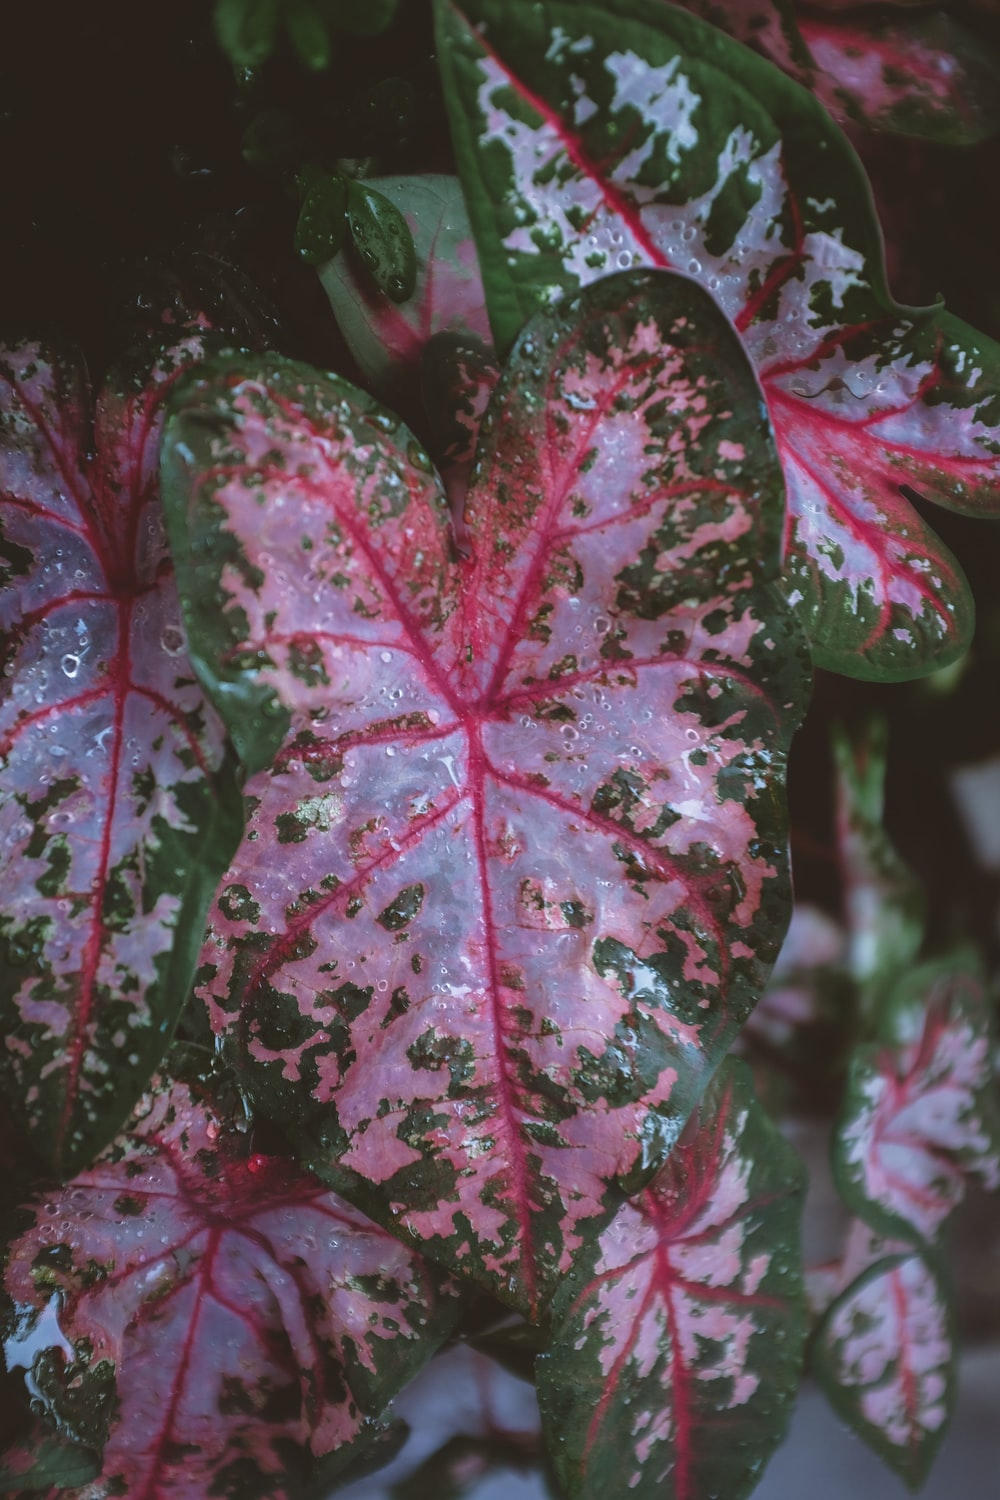 pink and green-leafed plant